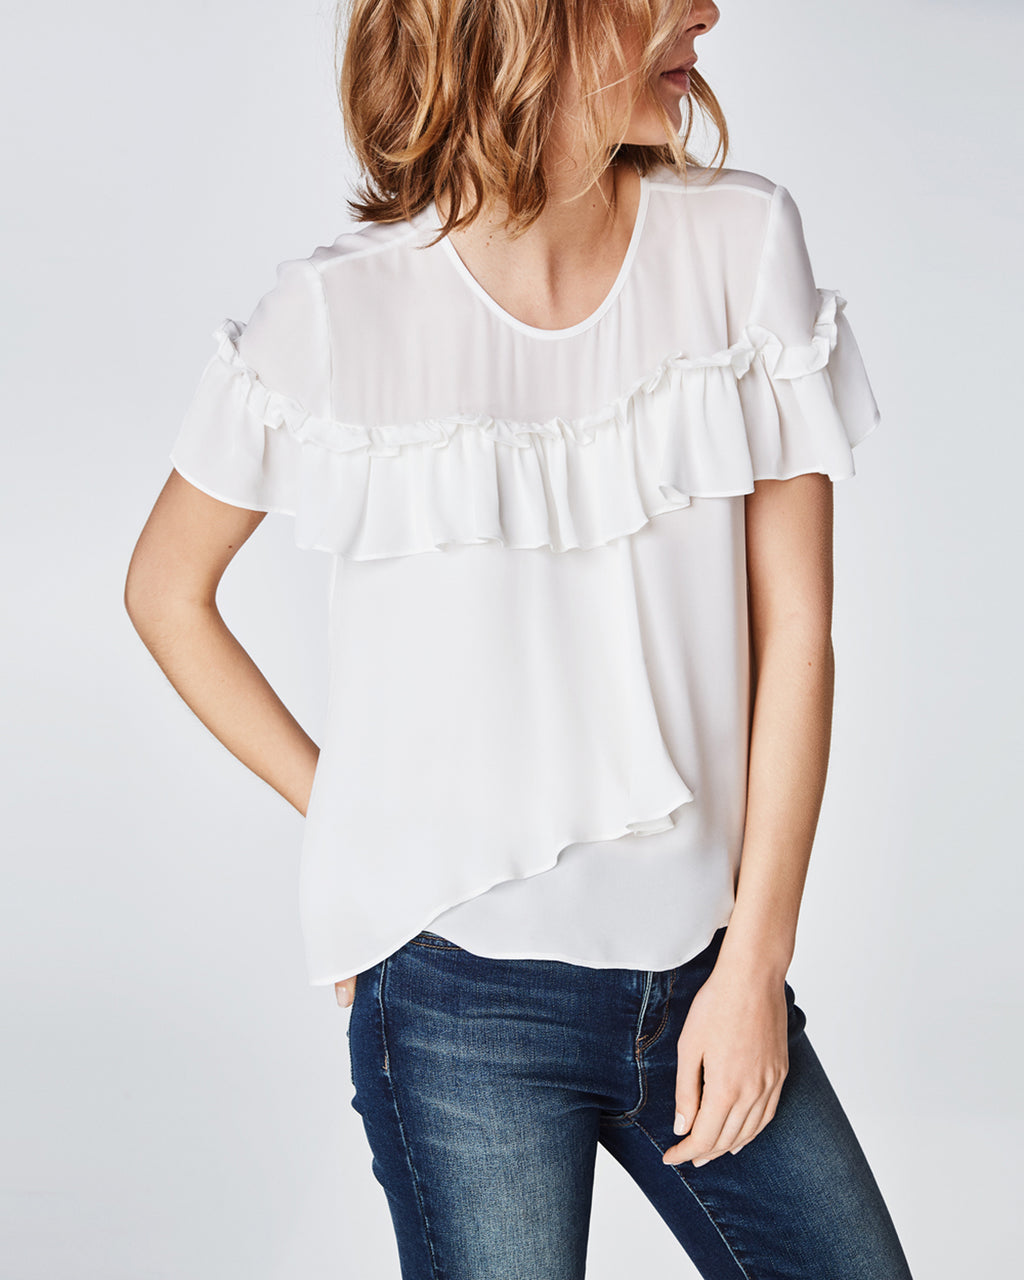 BD10246 - SILK RUFFLE TOP - tops - shirts - In a lightweight silk, this top features a statement ruffle for a trendy vibe. The versatile silhouette is perfect for pairing with jeans or a skirt for an effortlessly cool look. Finished with a keyhole and button for closure.